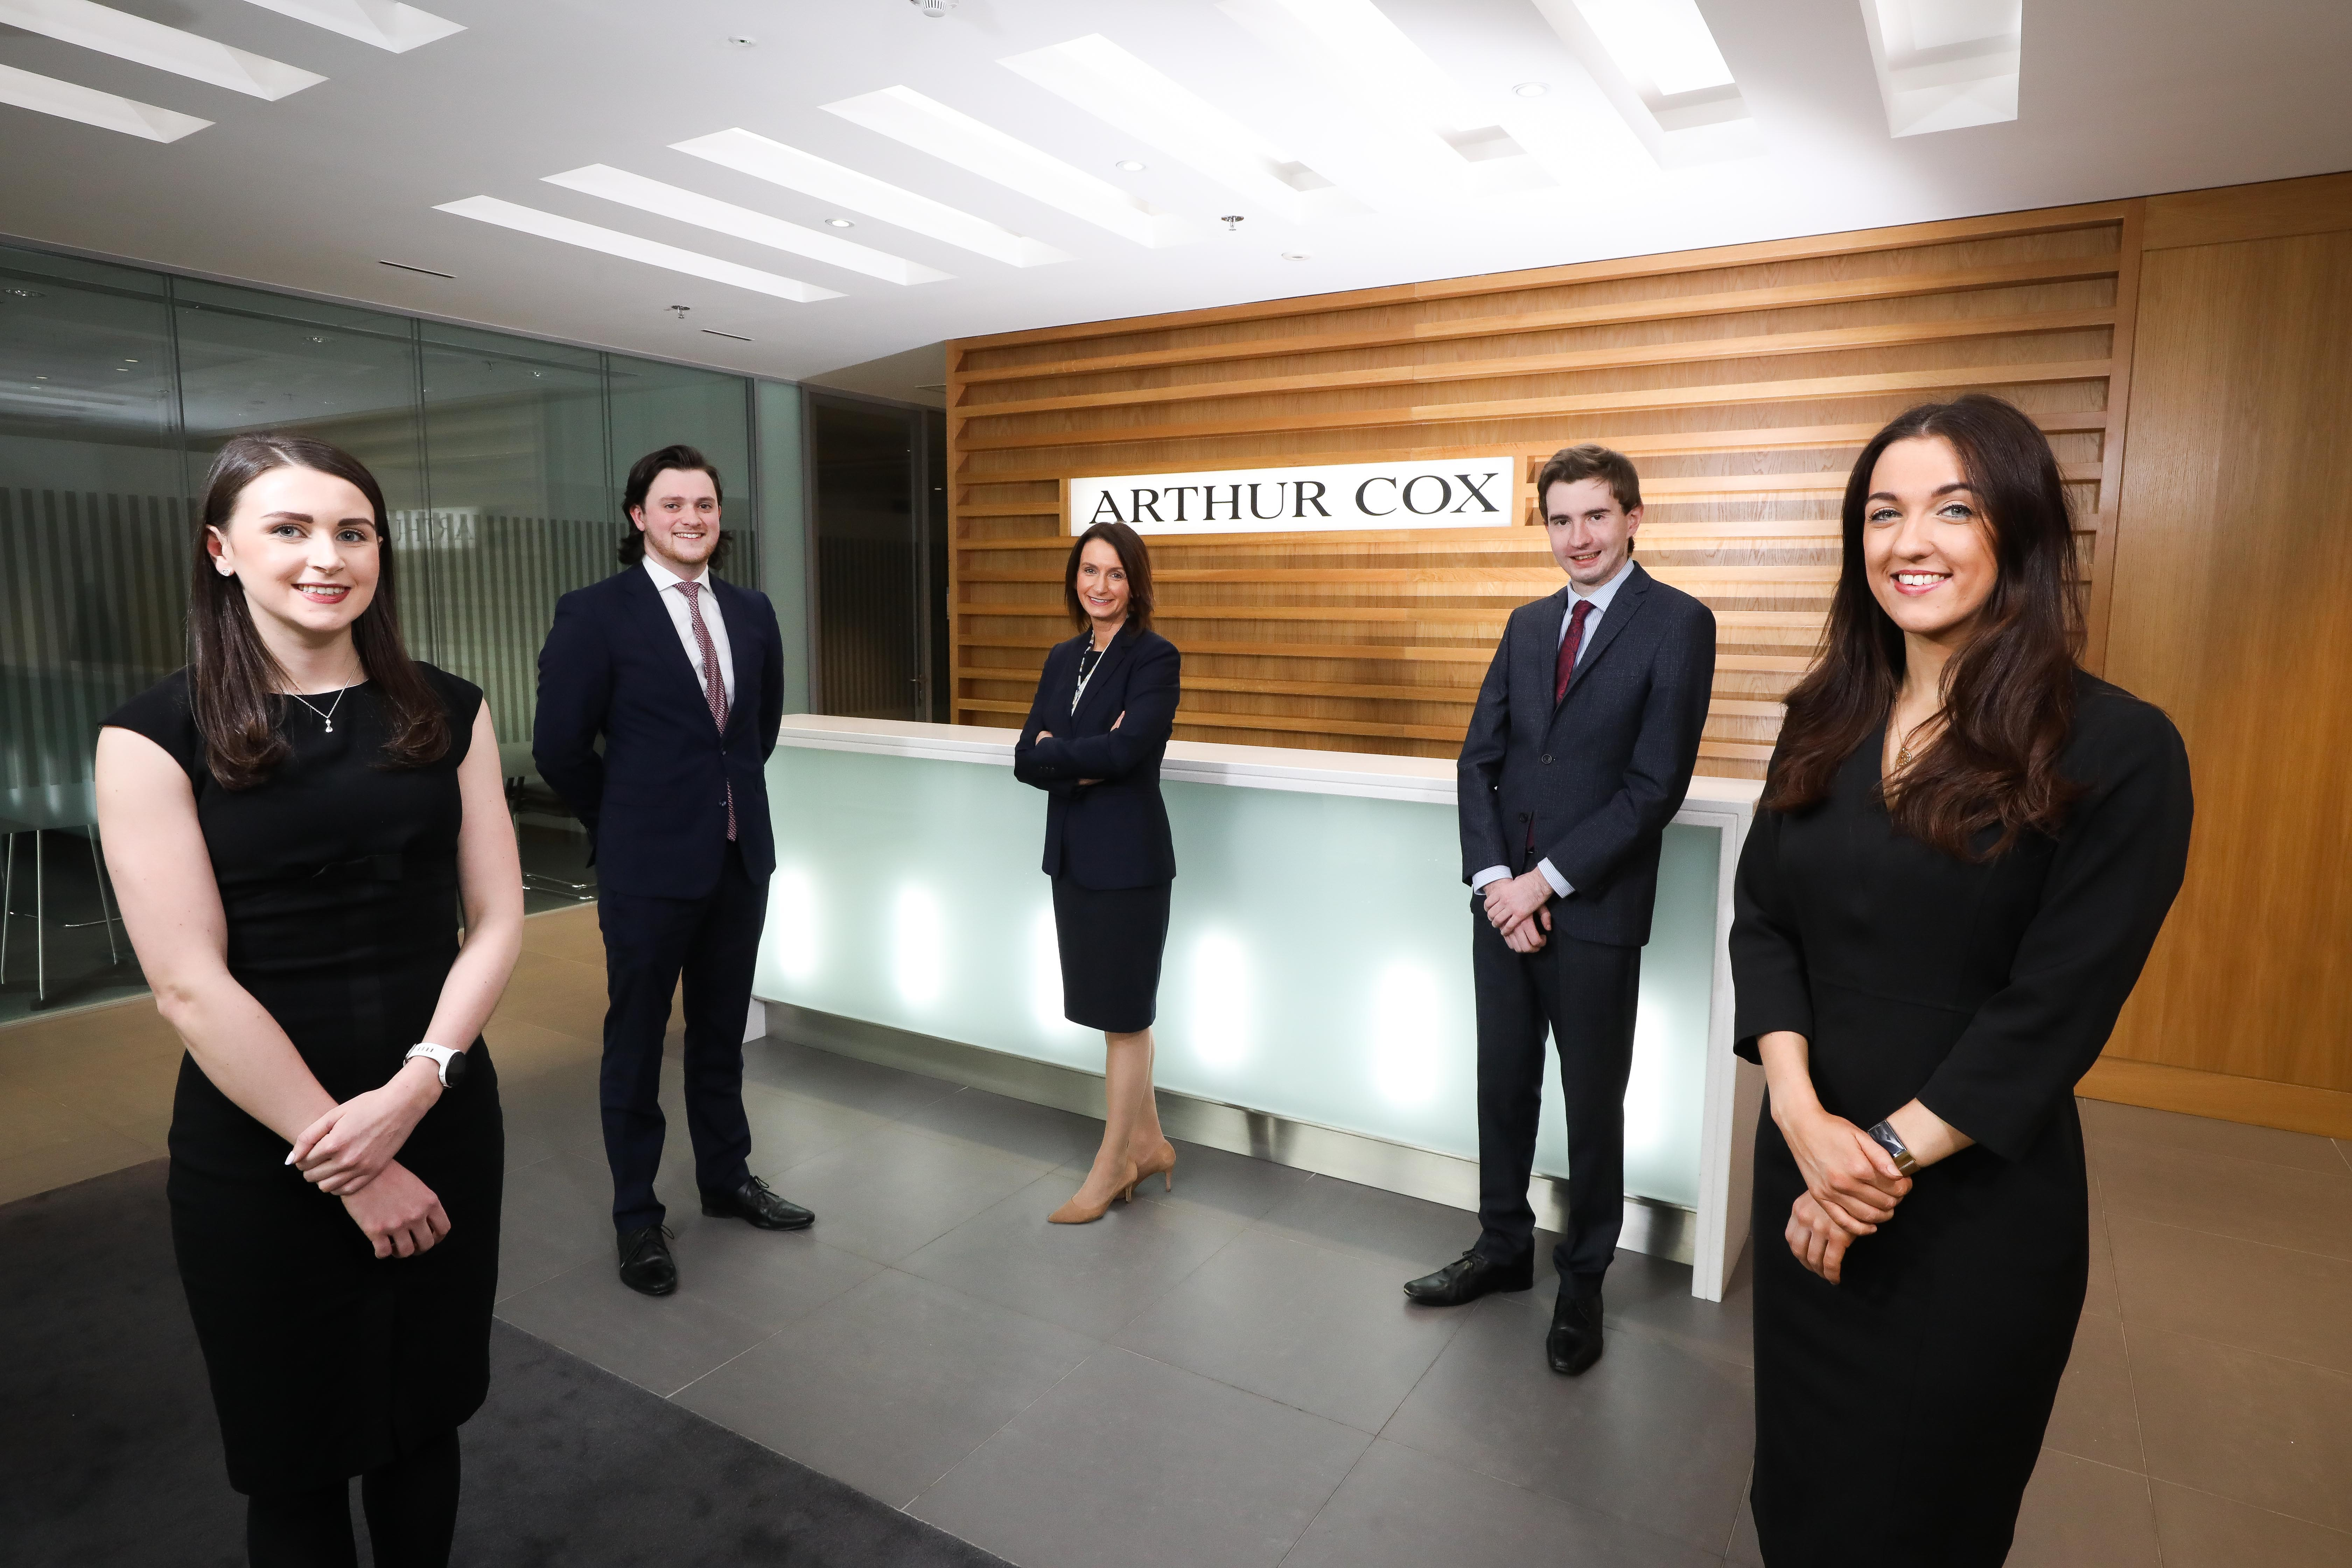 Arthur Cox makes new appointments